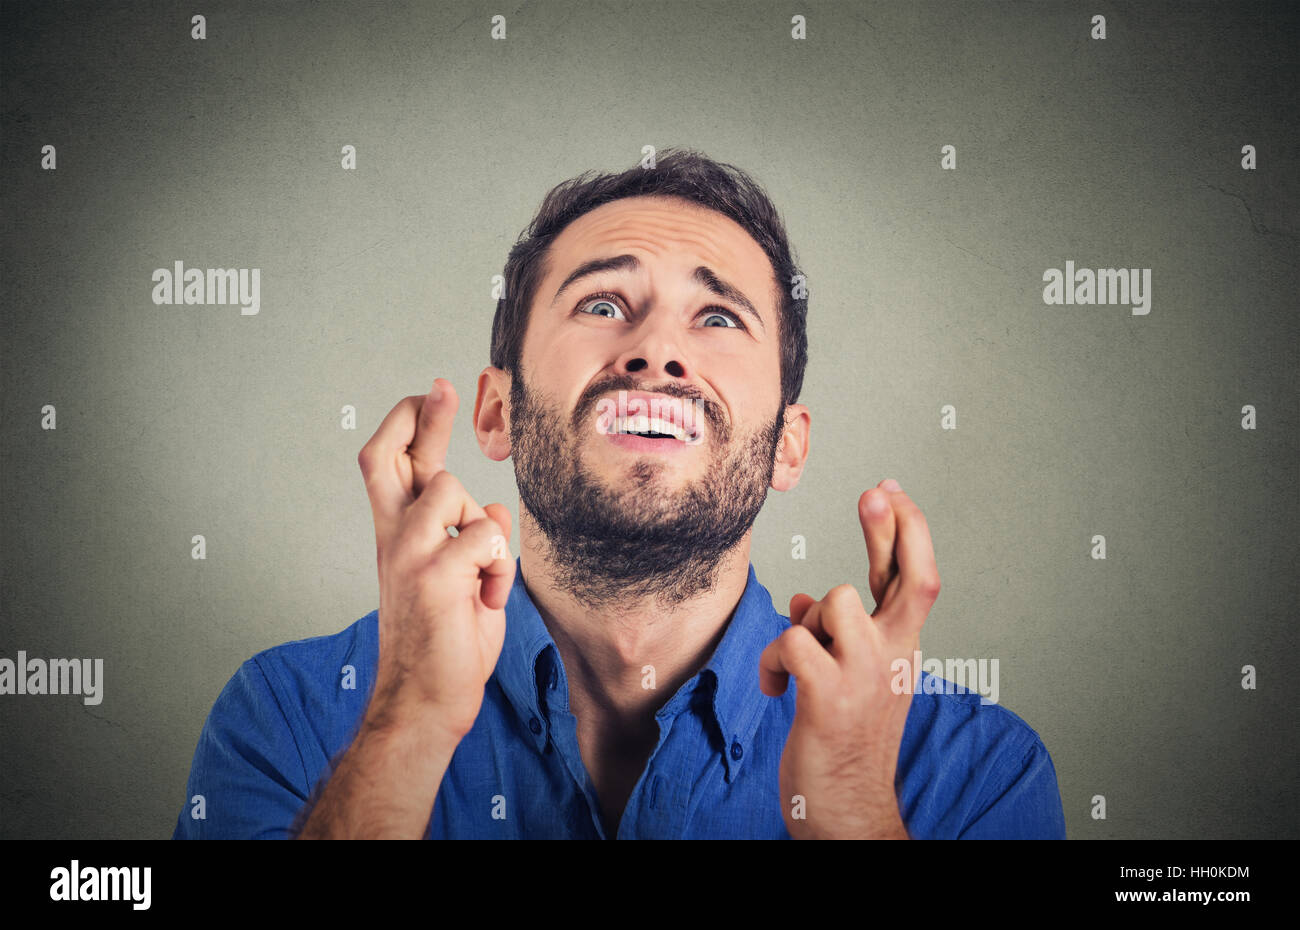 young funny guy, business man crossing fingers, wishing, hoping for best, miracle isolated on gray background. Human - Stock Image